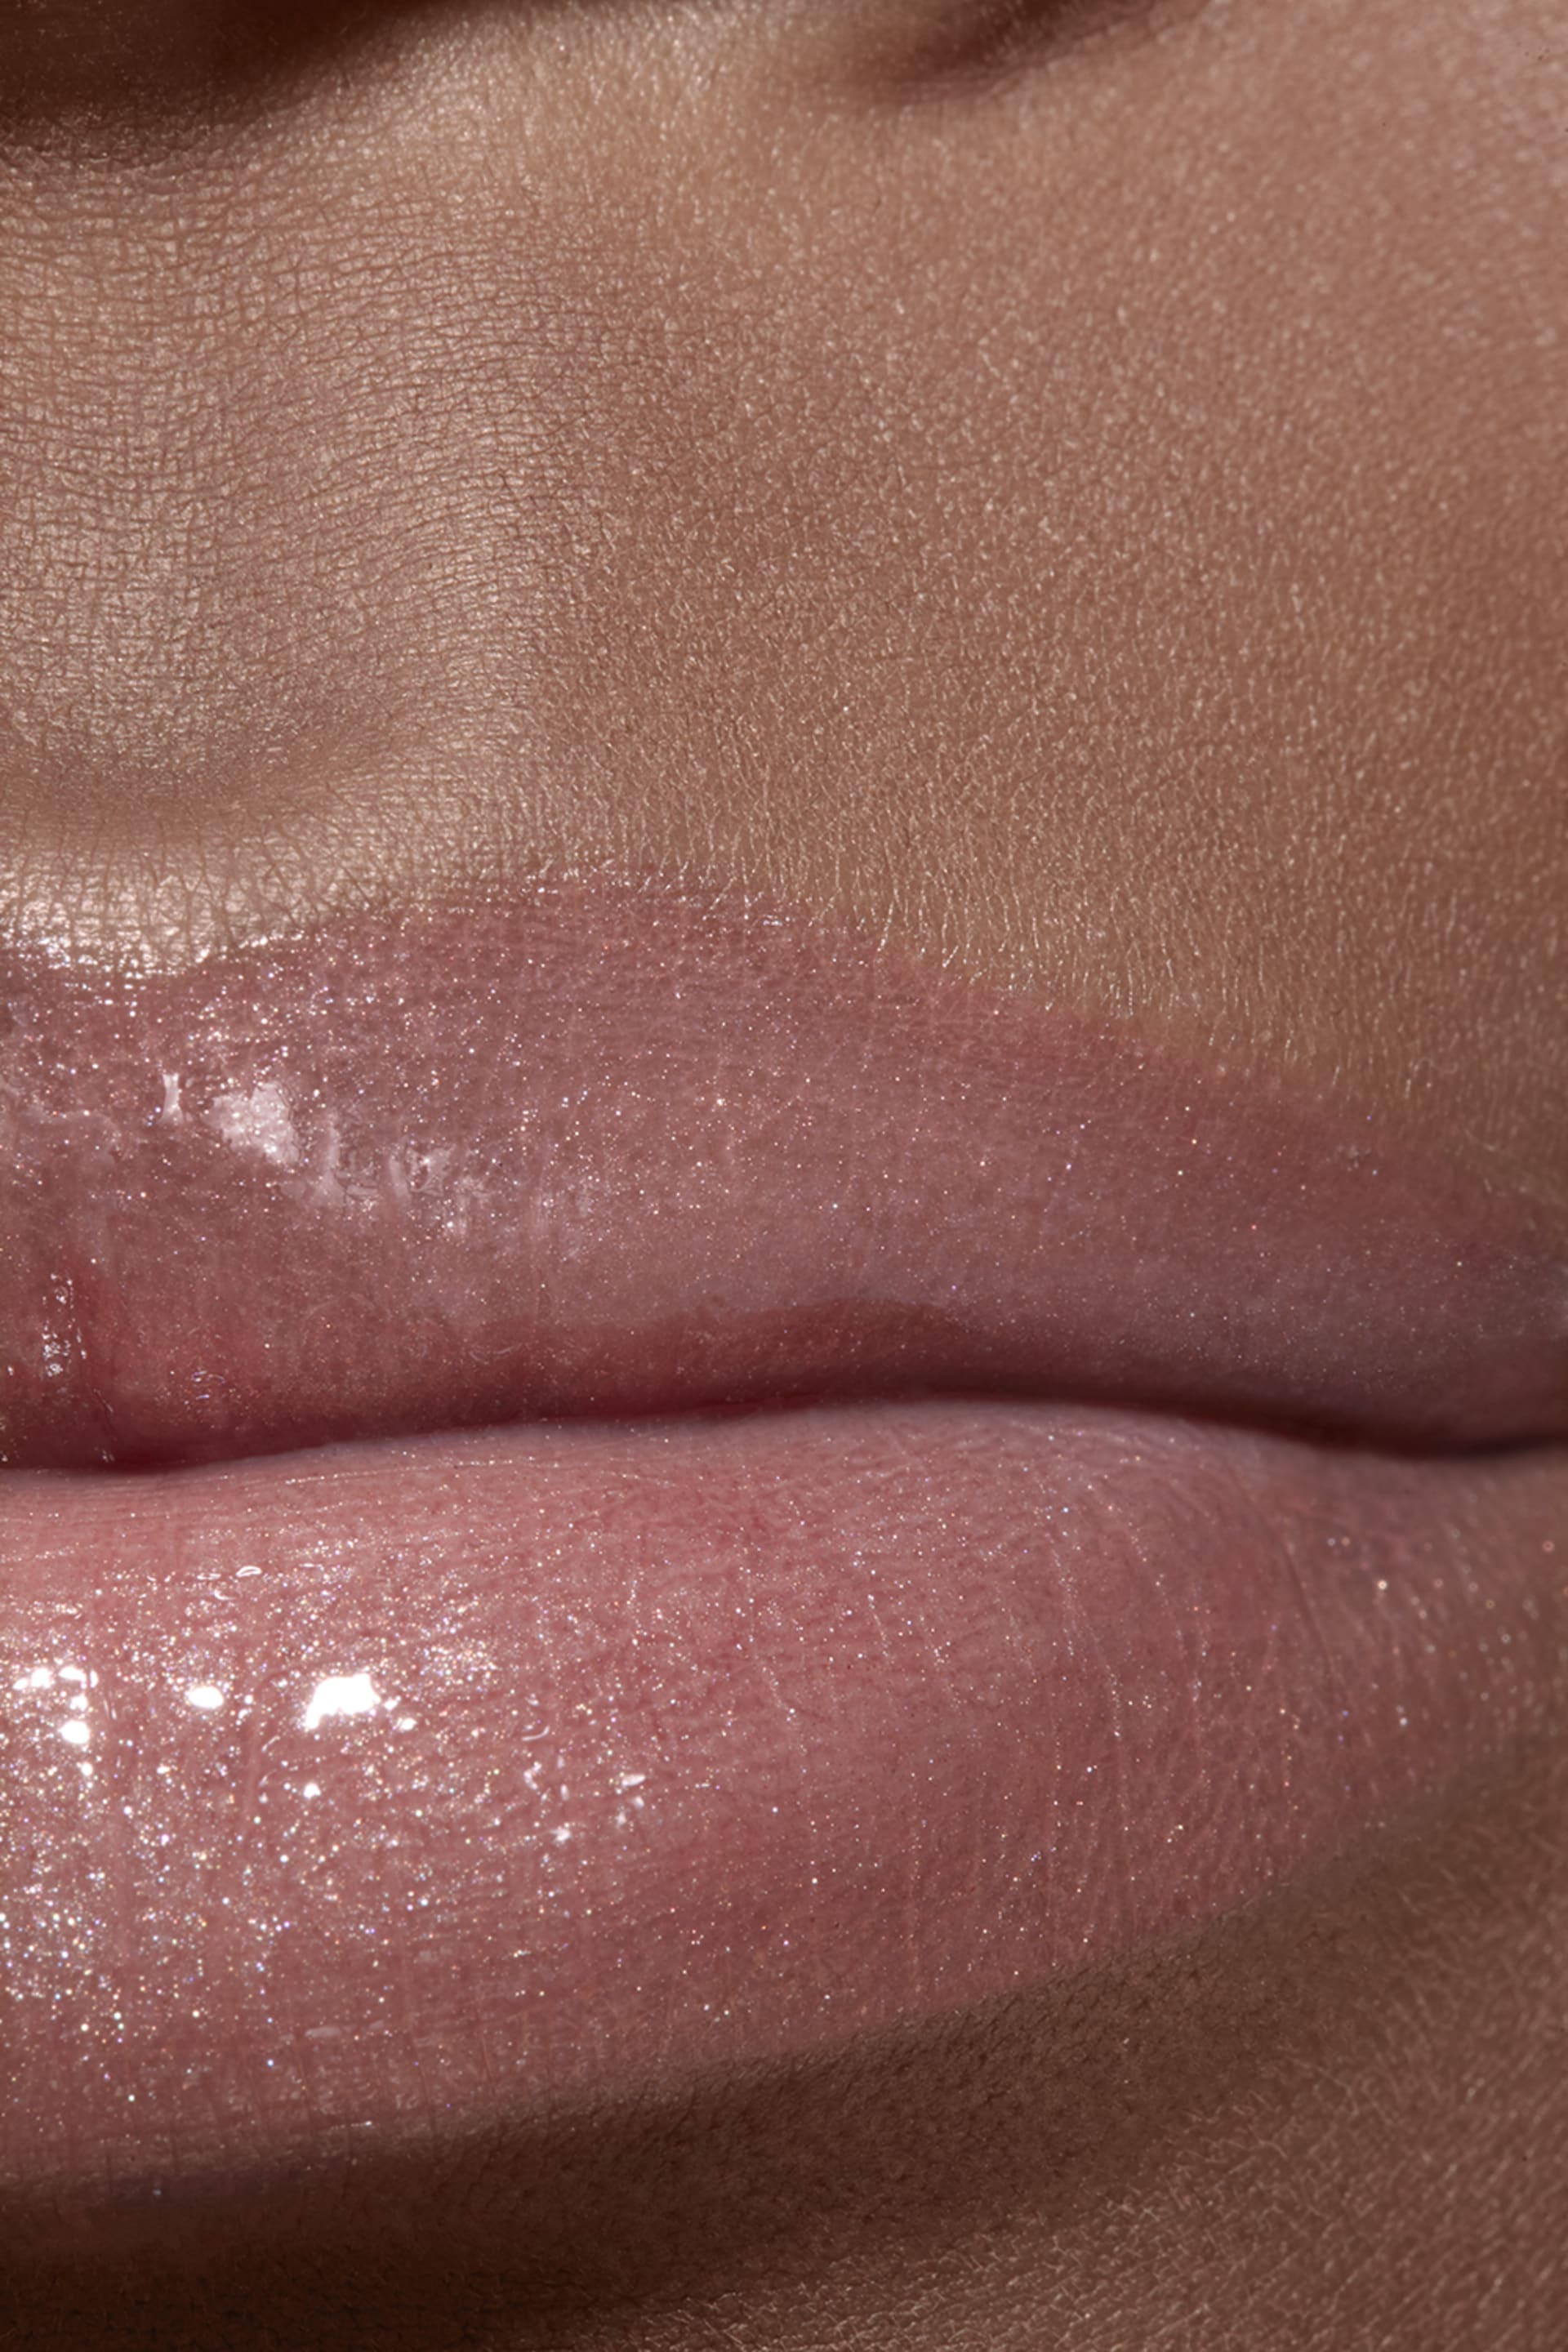 Application makeup visual 2 - ROUGE COCO GLOSS 722 - NOCE MOSCATA